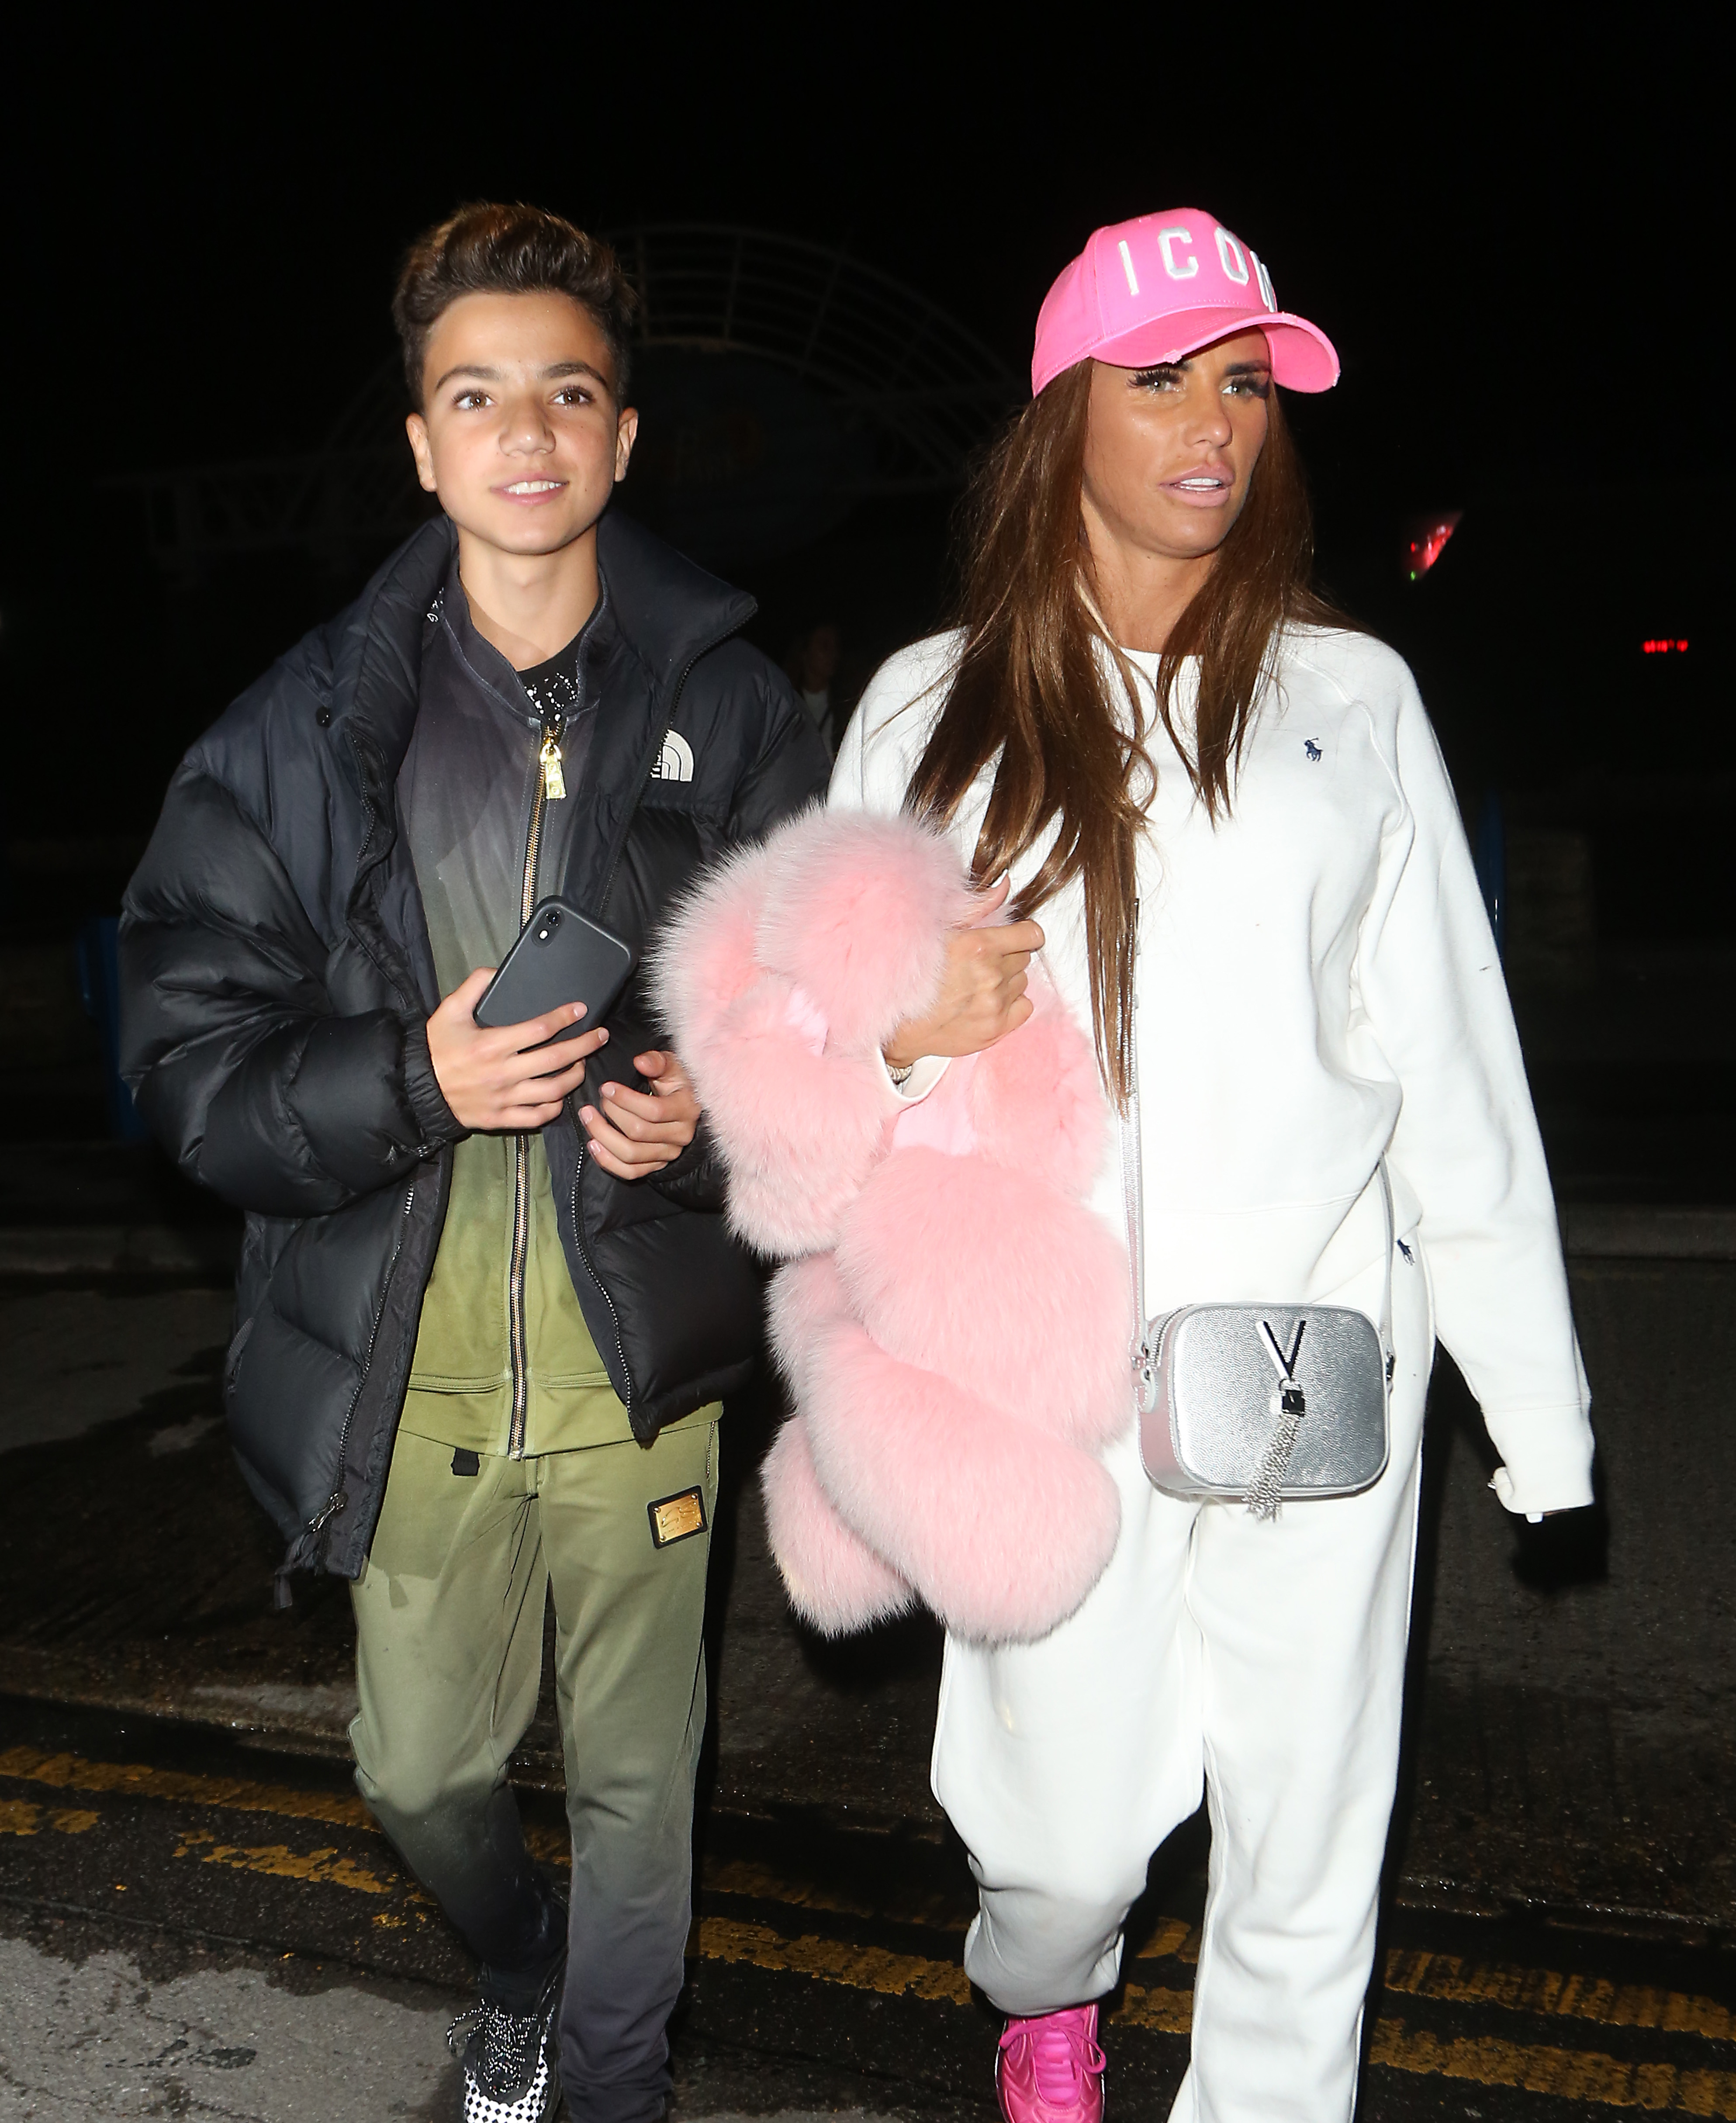 Junior Andre and Katie Price